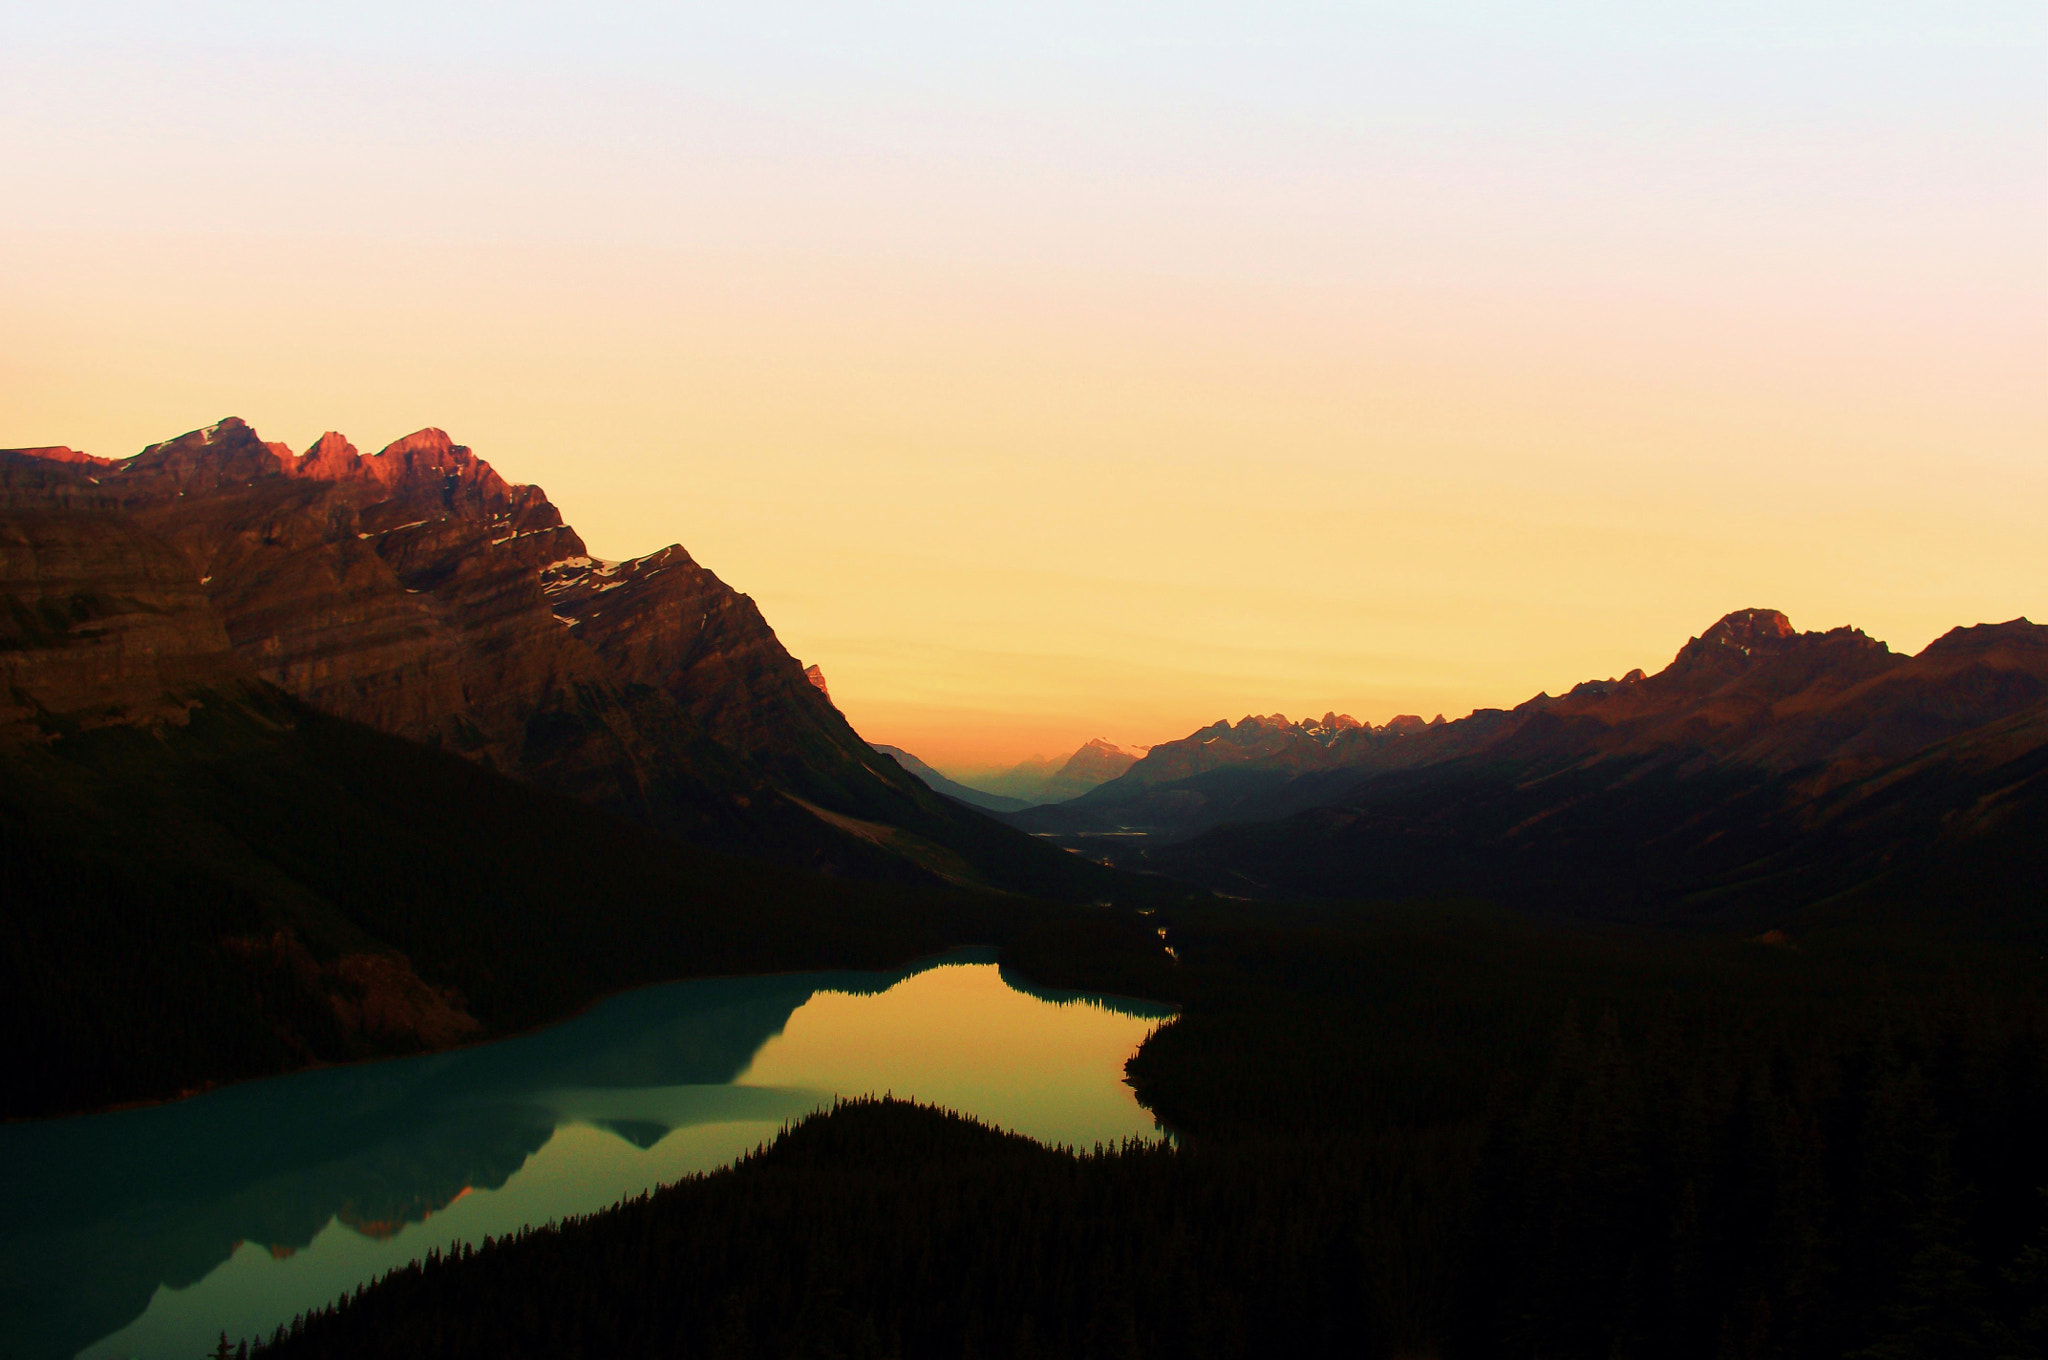 Photograph Sunrise, Peyto Lake. by Jag Canape on 500px